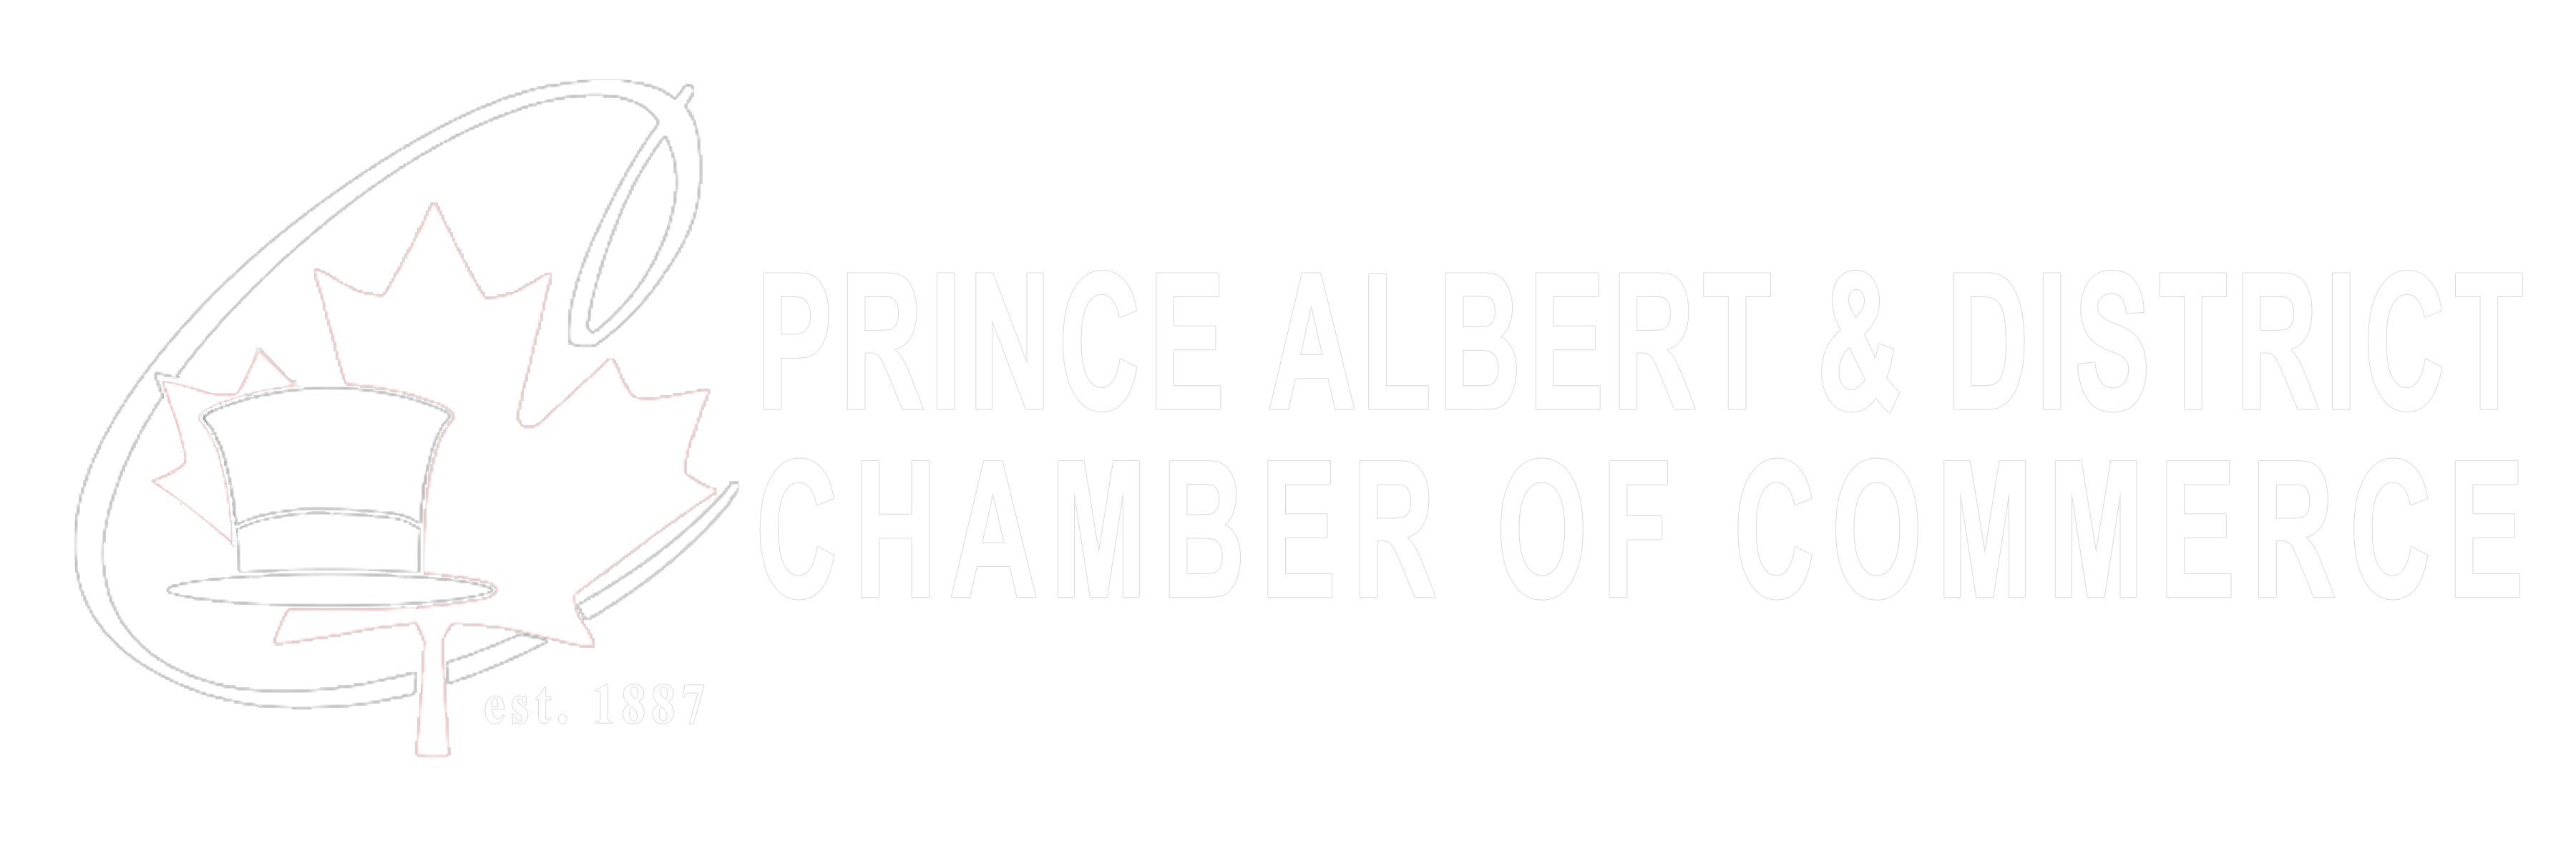 Prince Albert & District Chamber of Commerce